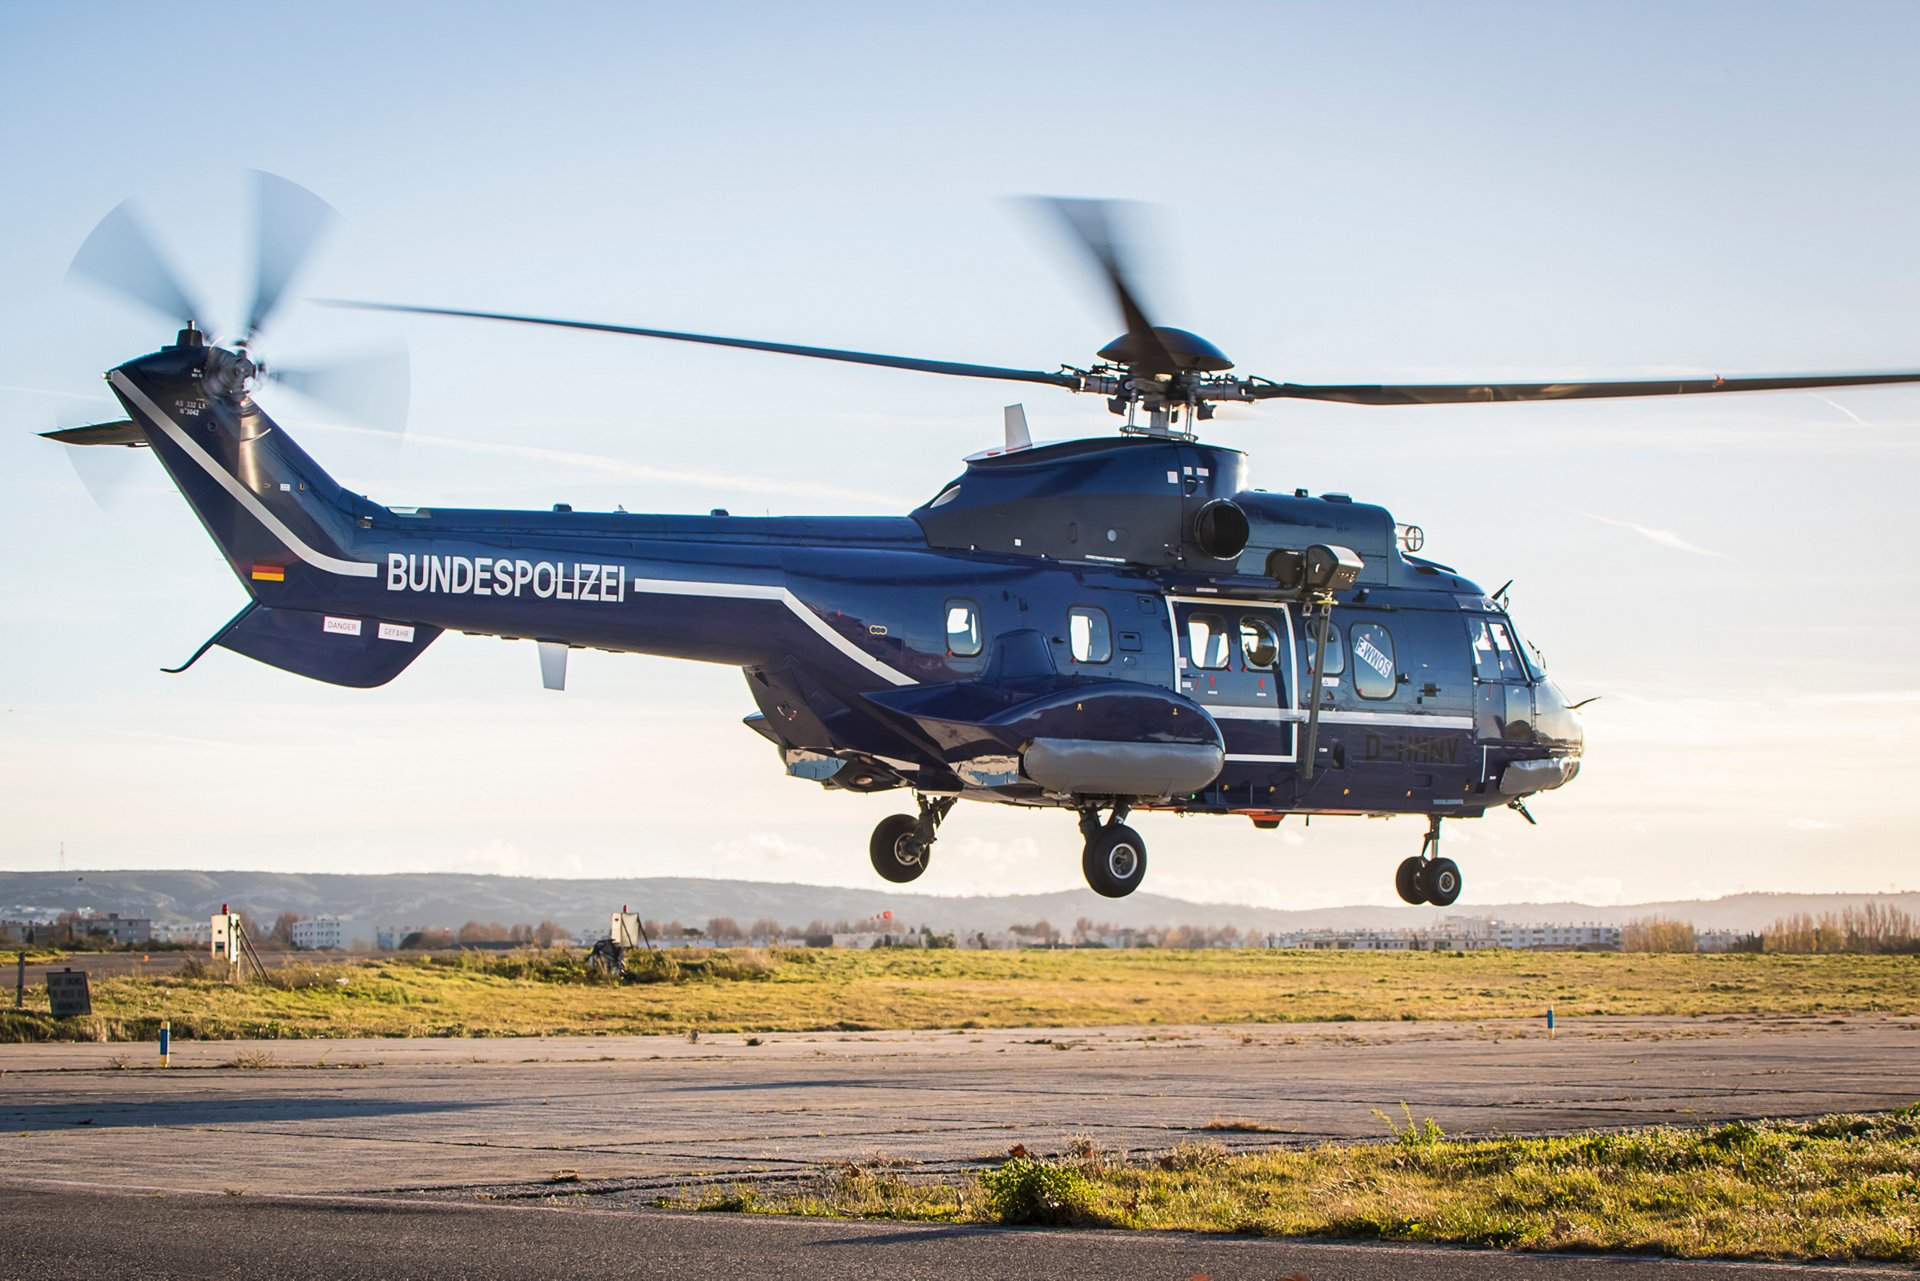 The H215 is a versatile and robust twin-engine helicopter that combines advanced avionics and a reliable platform for rugged multi-mission capabilities.